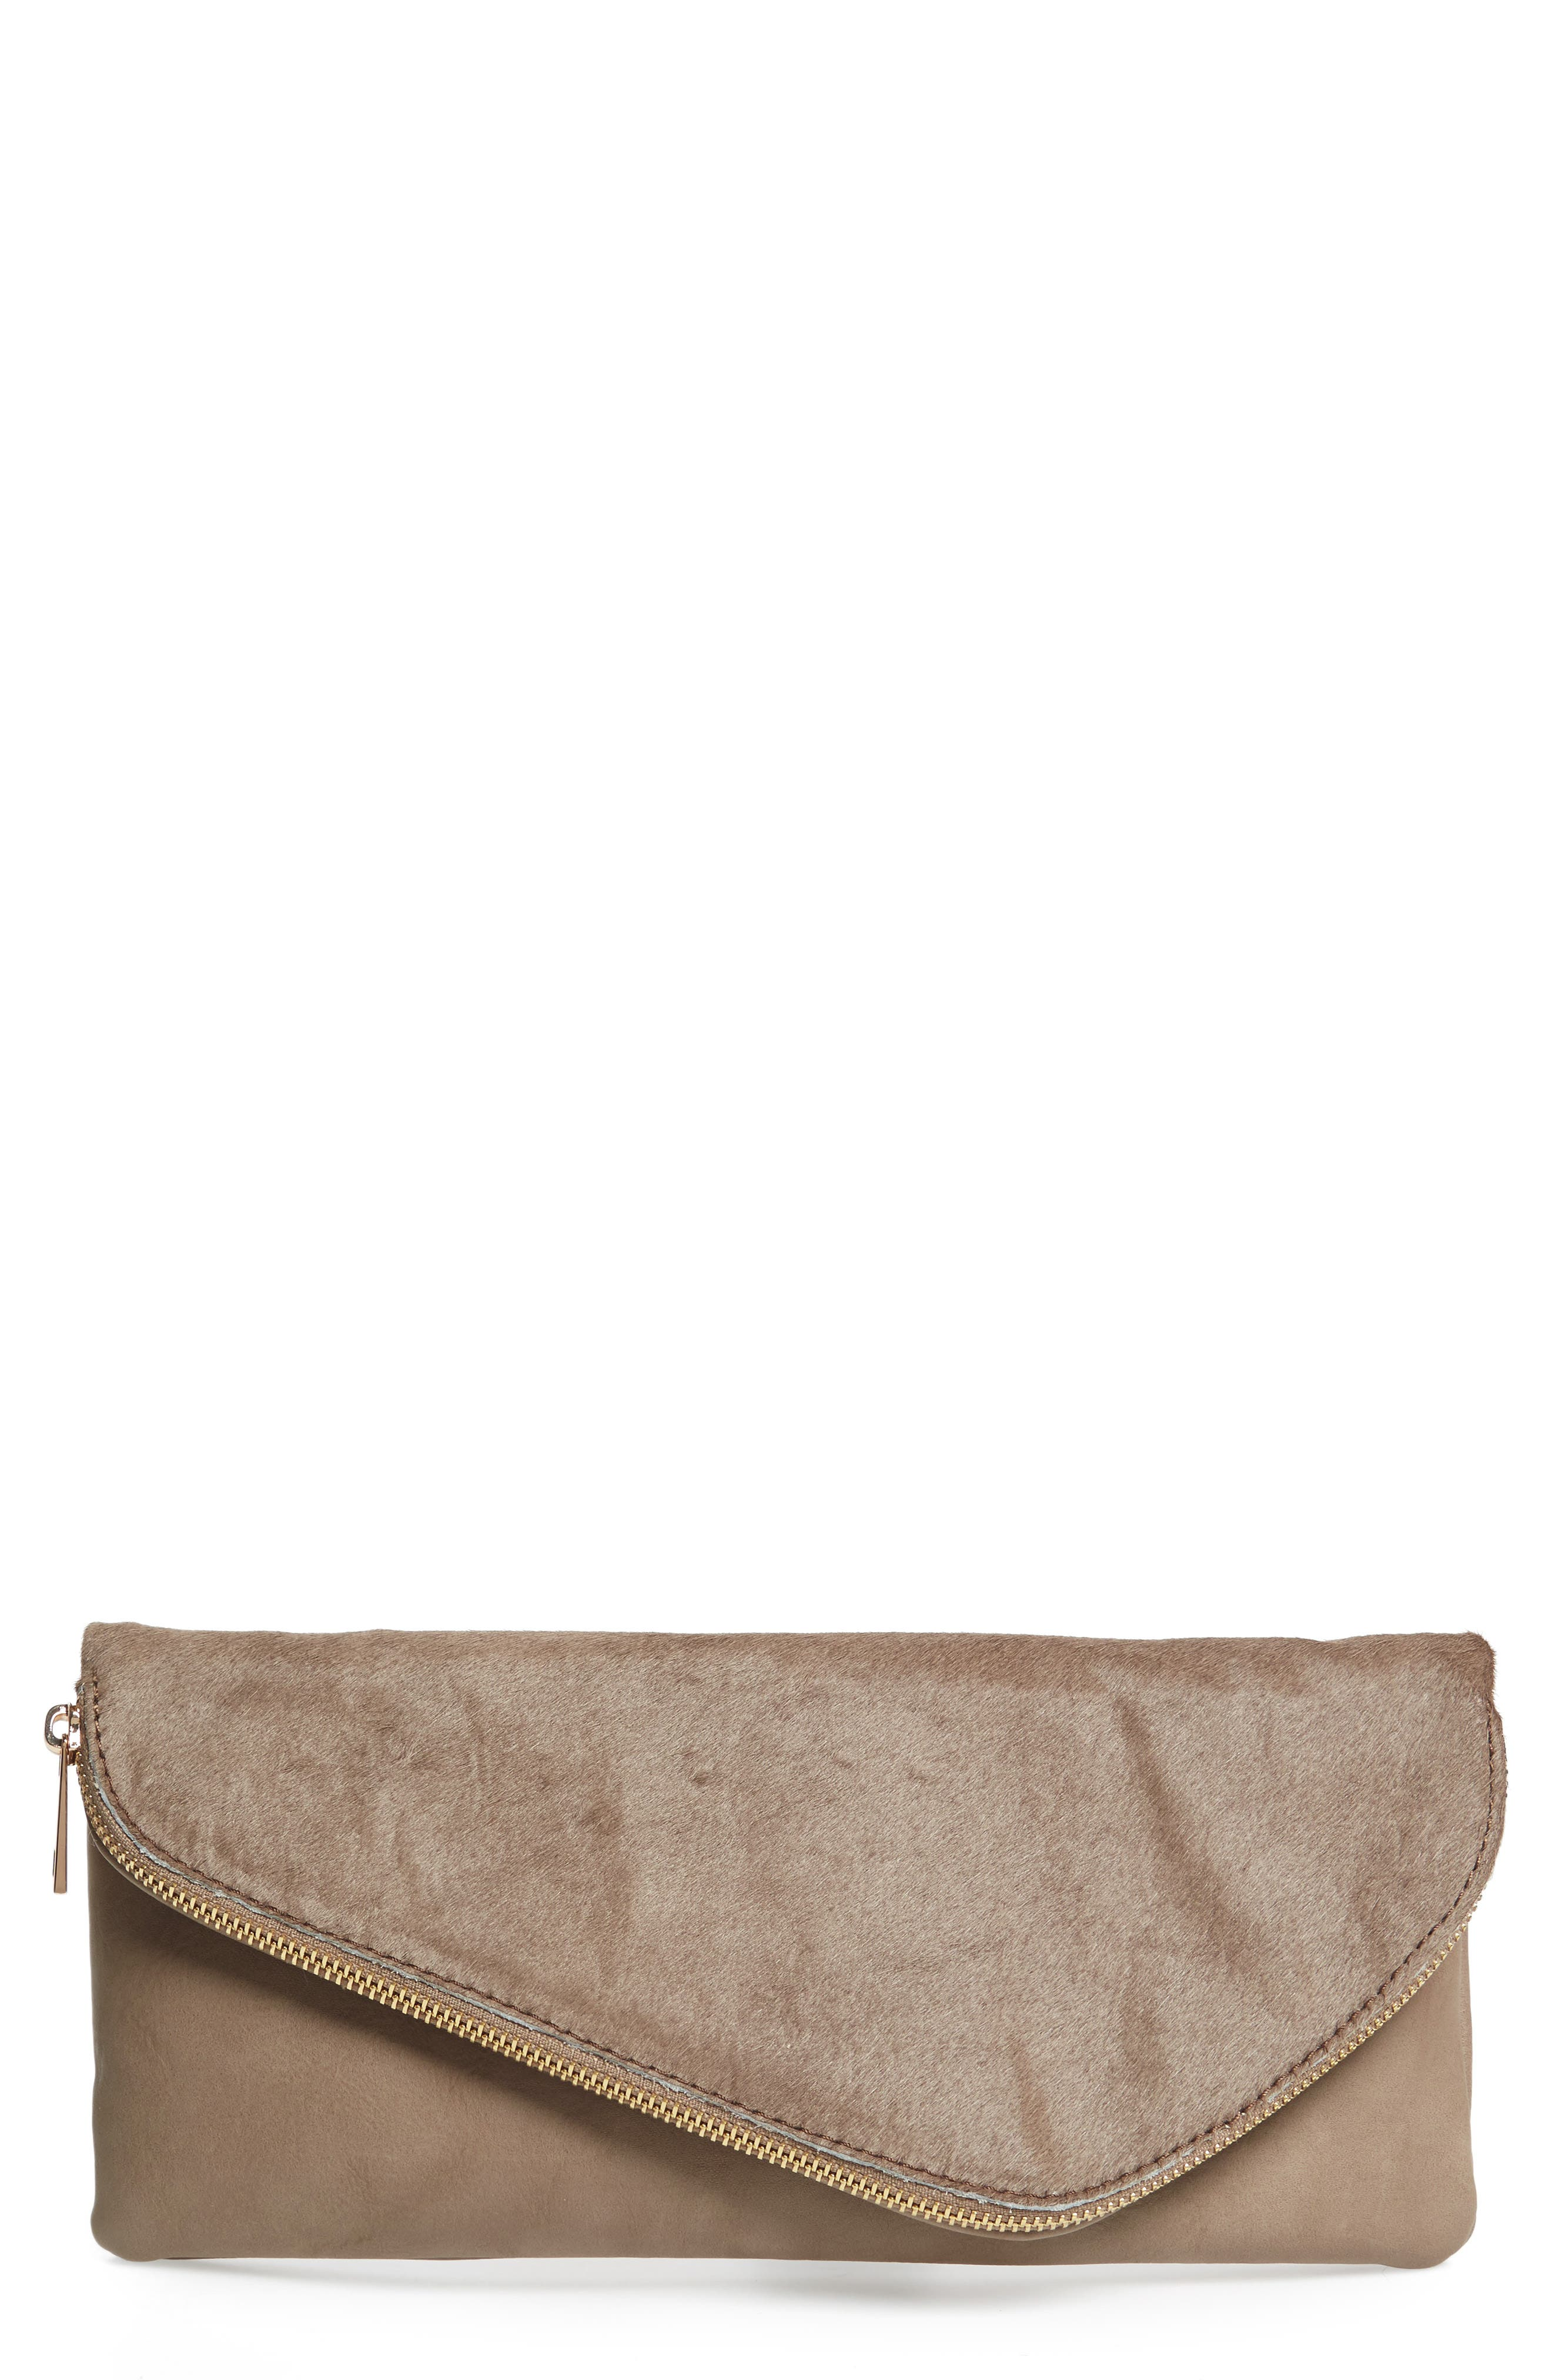 Tammi Genuine Calf Hair & Faux Leather Foldover Clutch,                             Main thumbnail 1, color,                             Taupe